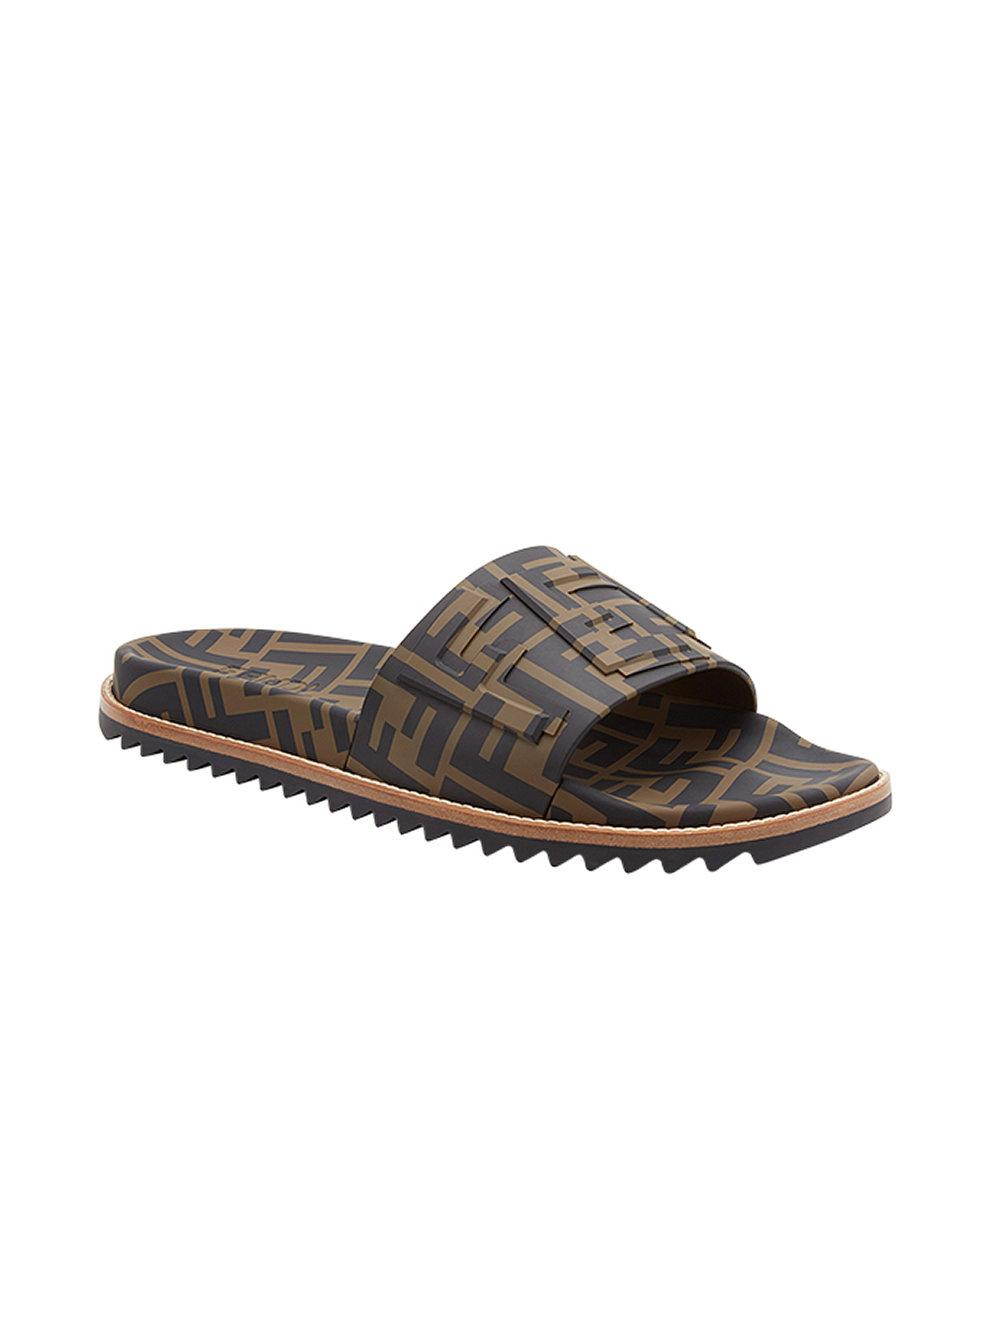 f78acb165 Fendi Ff Slides in Brown for Men - Save 40% - Lyst